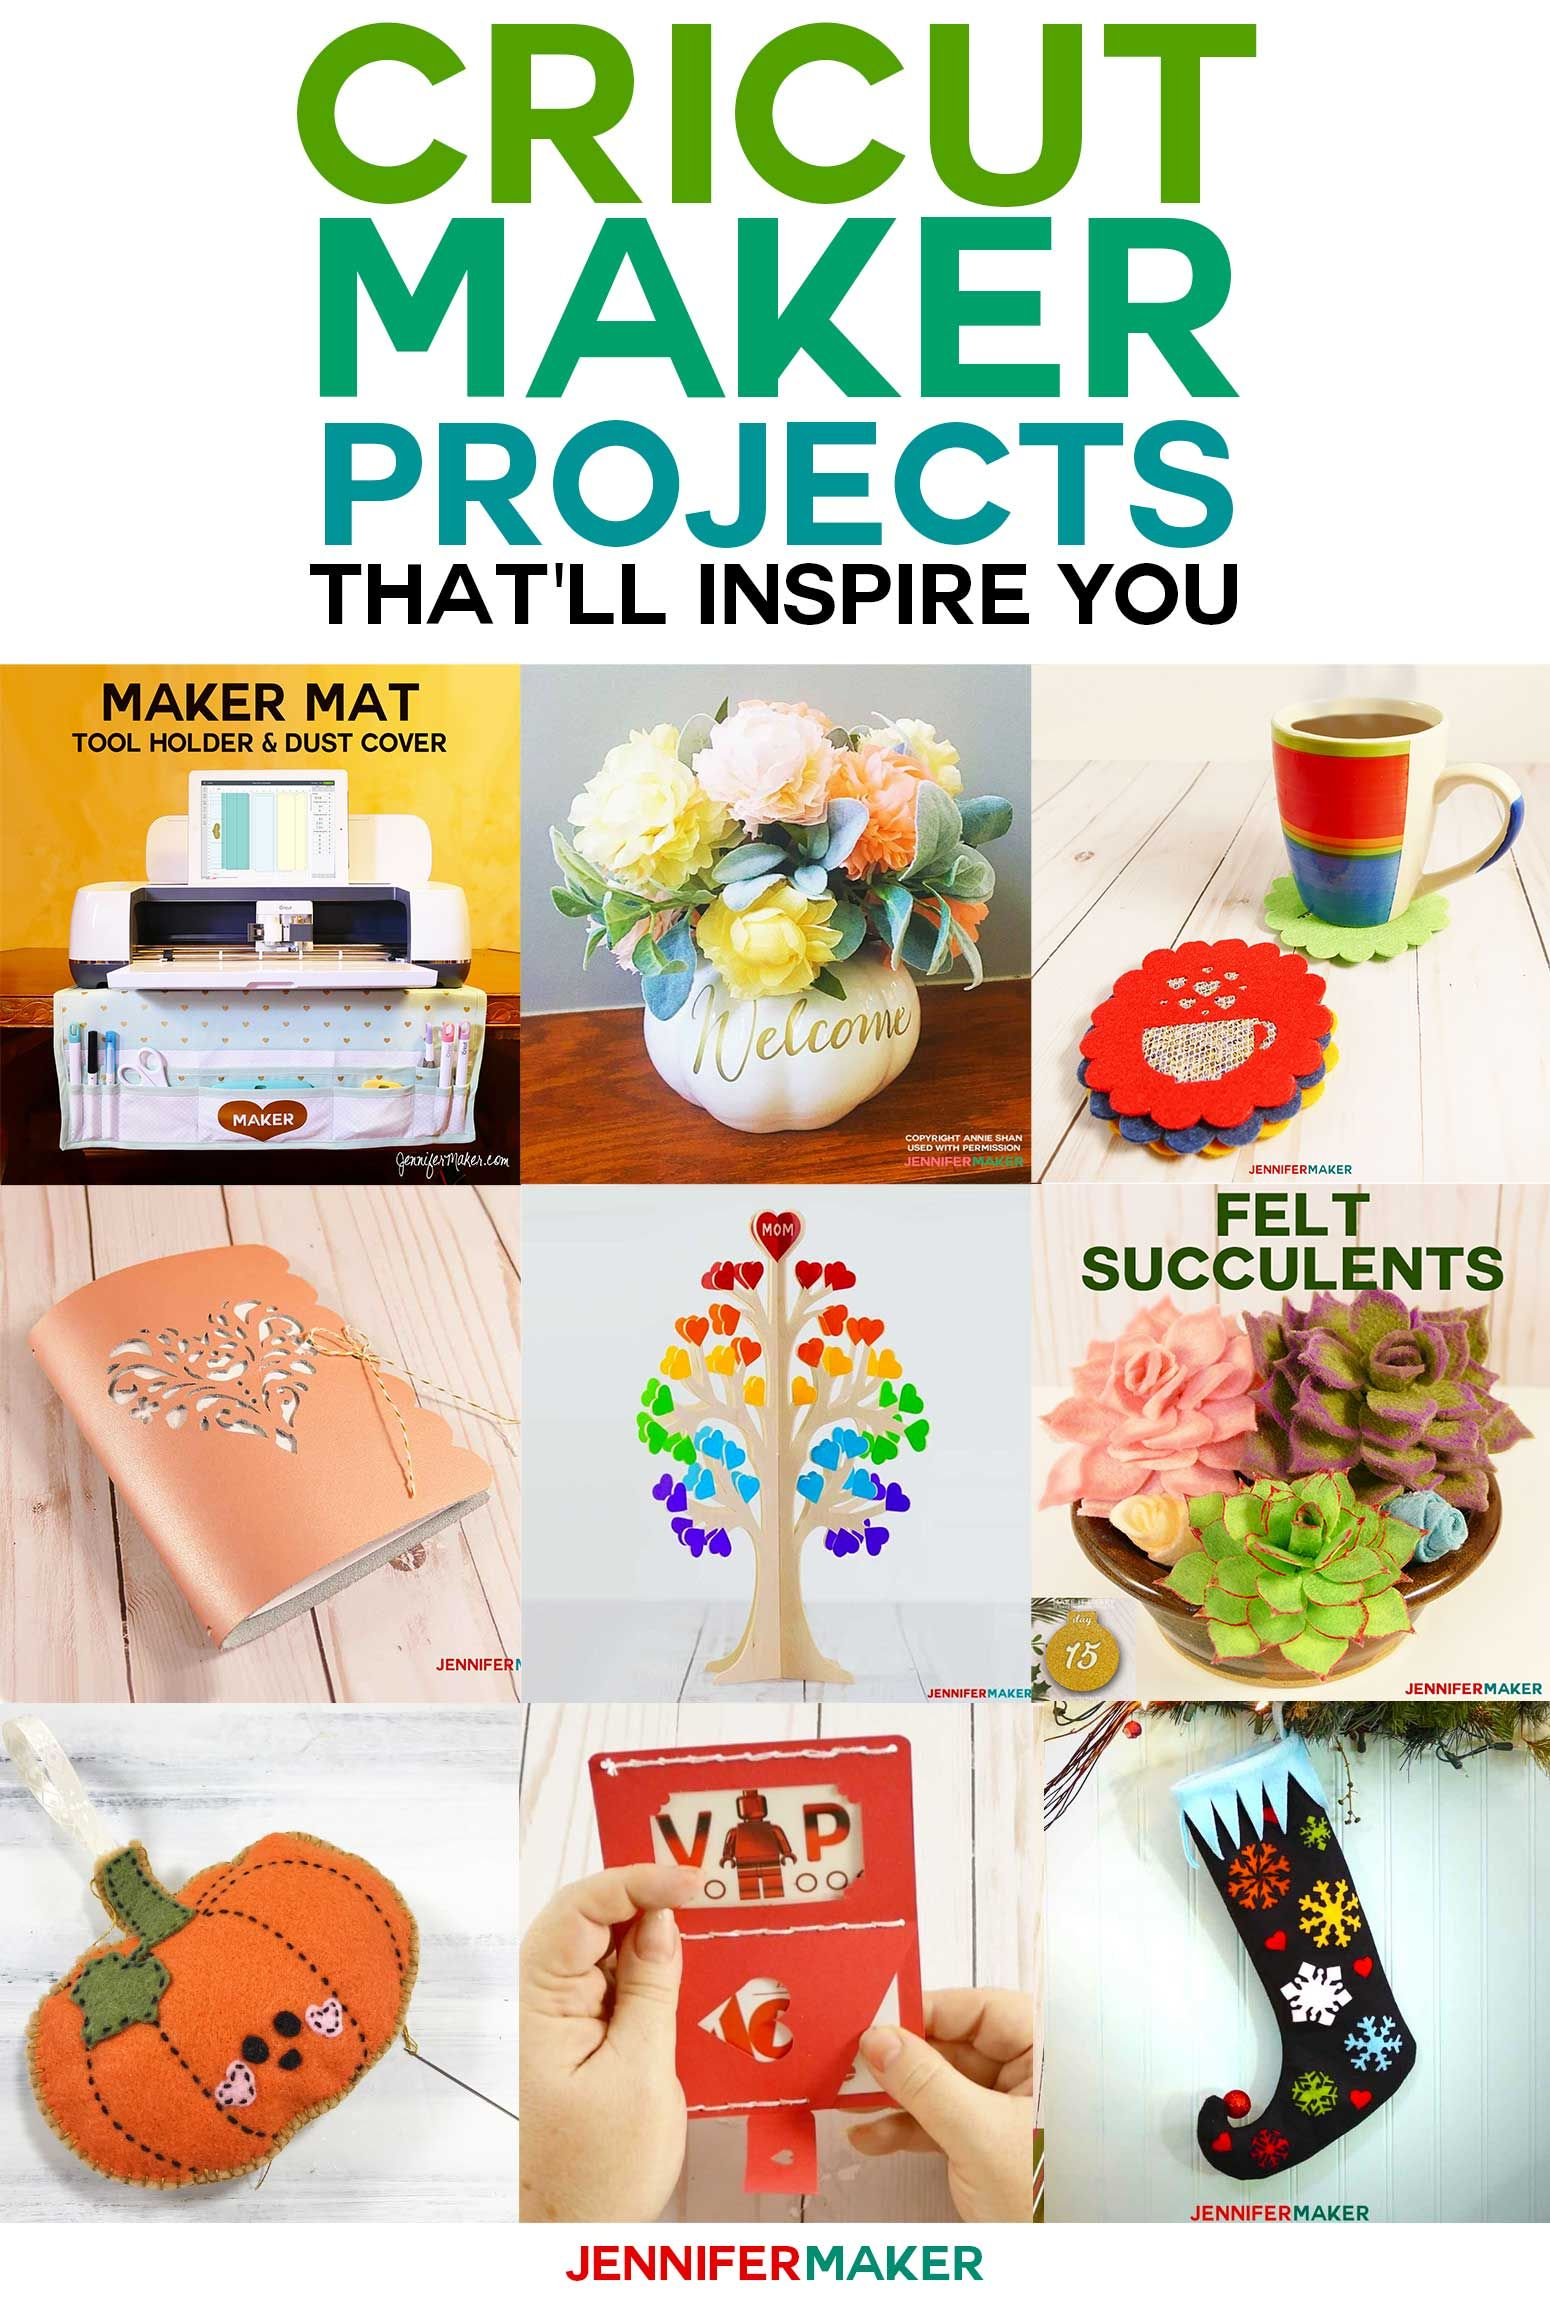 Cricut Maker Projects That'll Inspire You! - Jennifer Maker